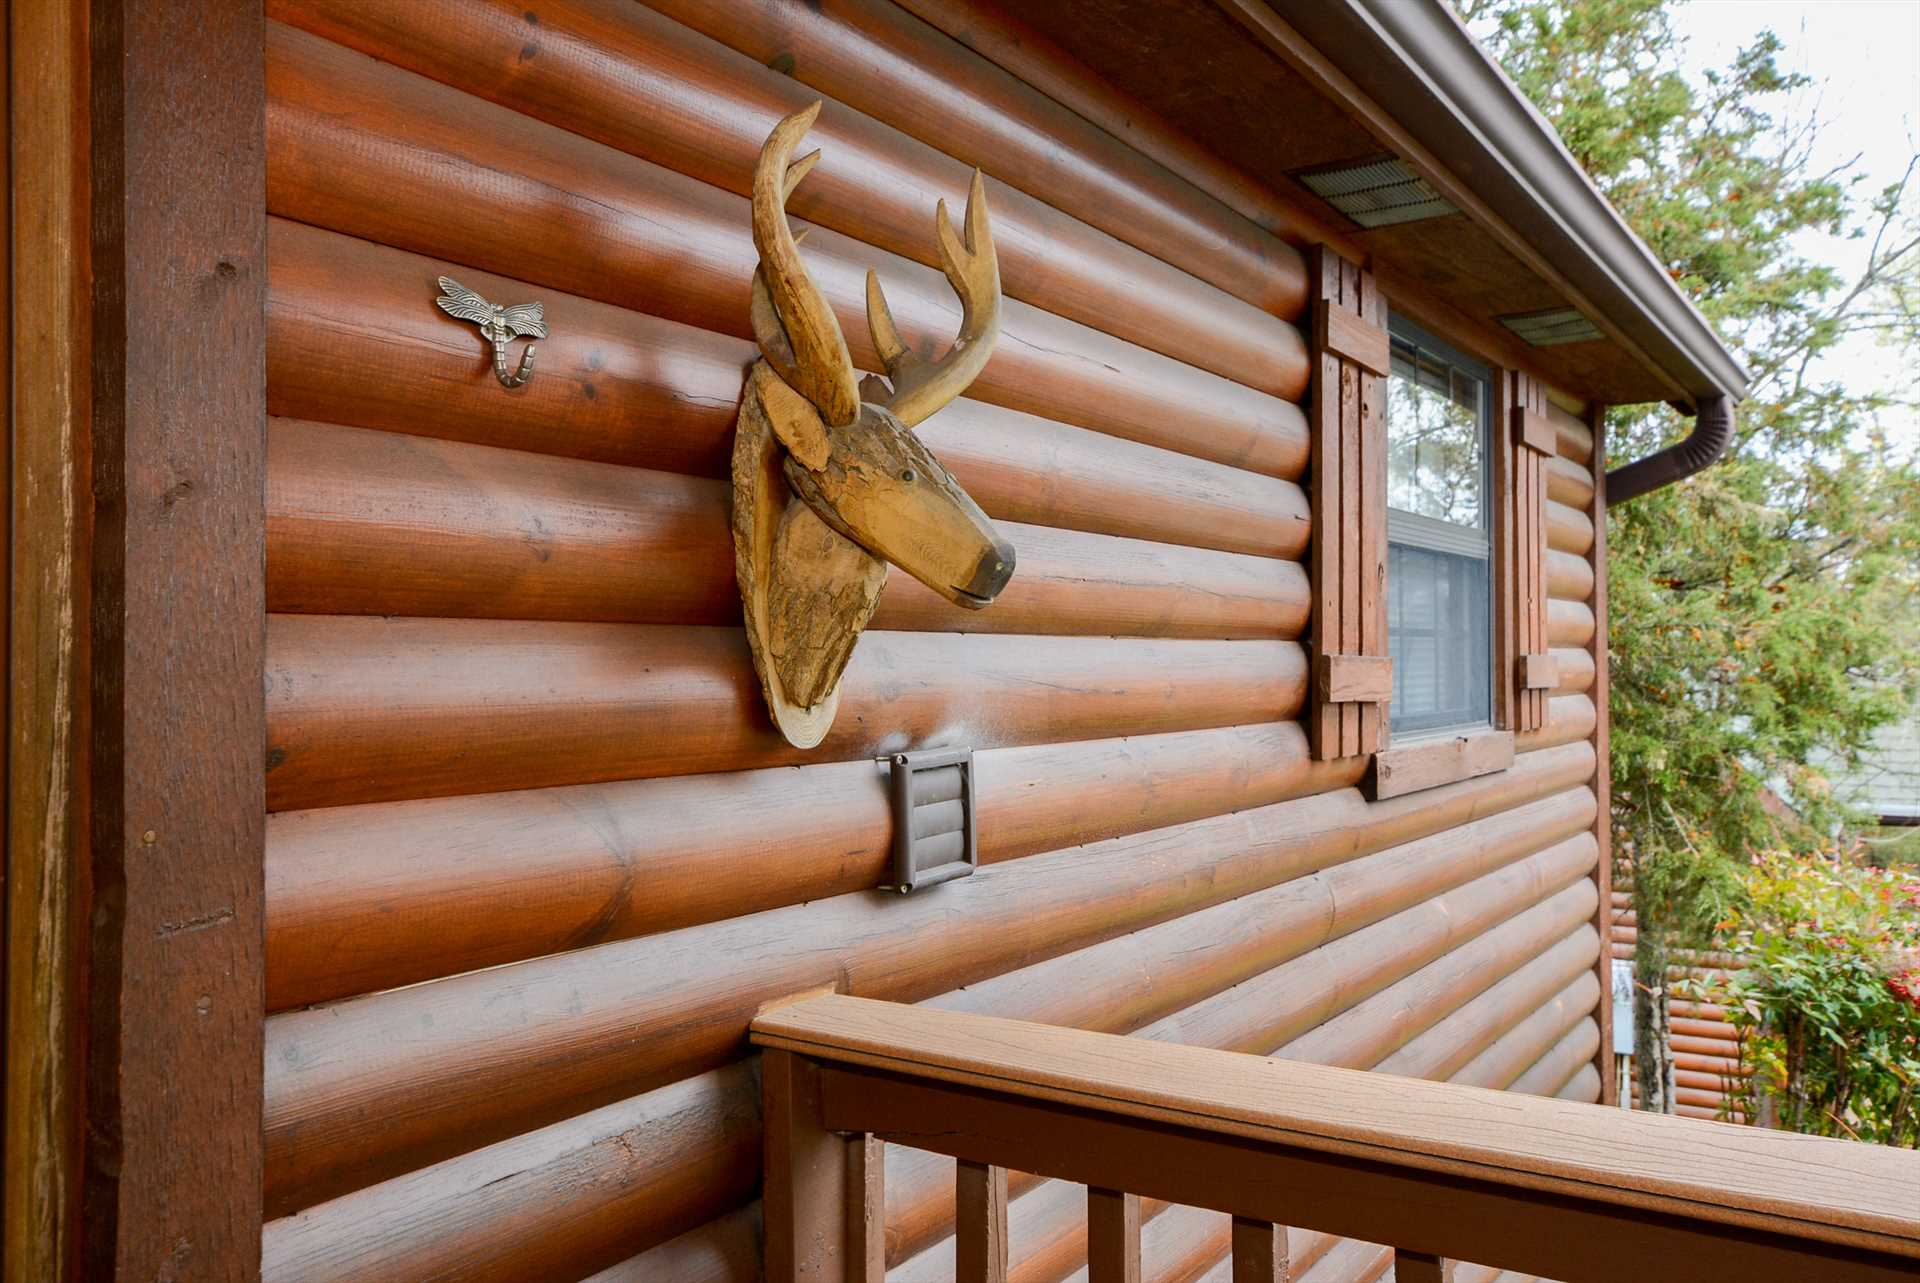 This is the real deal - a solid log cabin in the heart of th